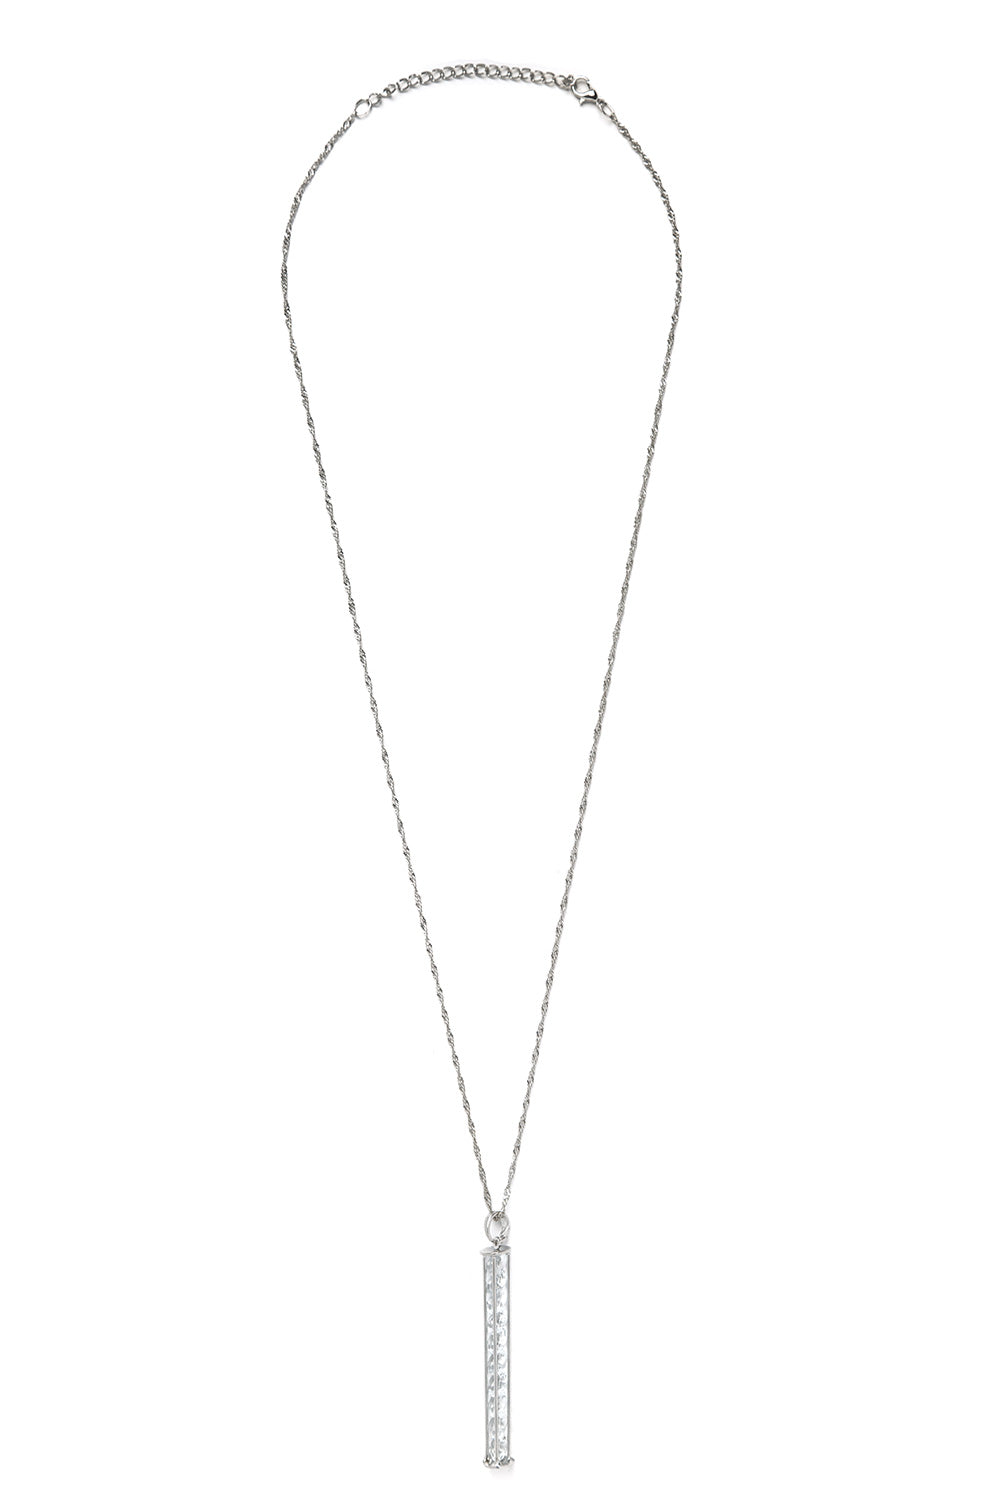 Type 4 Rod Reflection Necklace